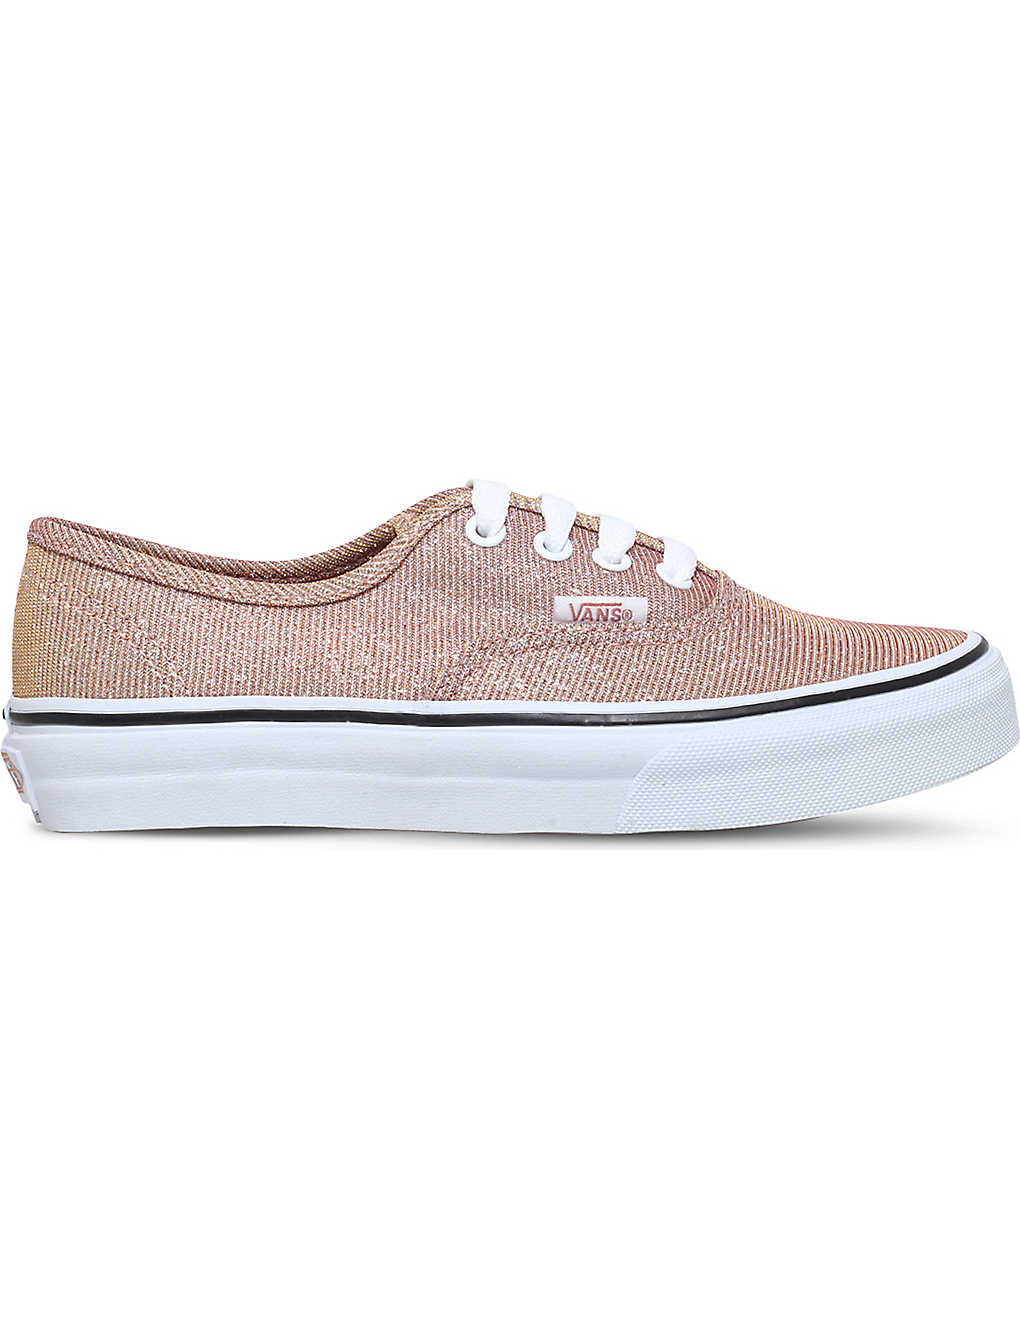 bae473ae4b76 VANS - Authentic glitter trainers 6-11 years | Selfridges.com